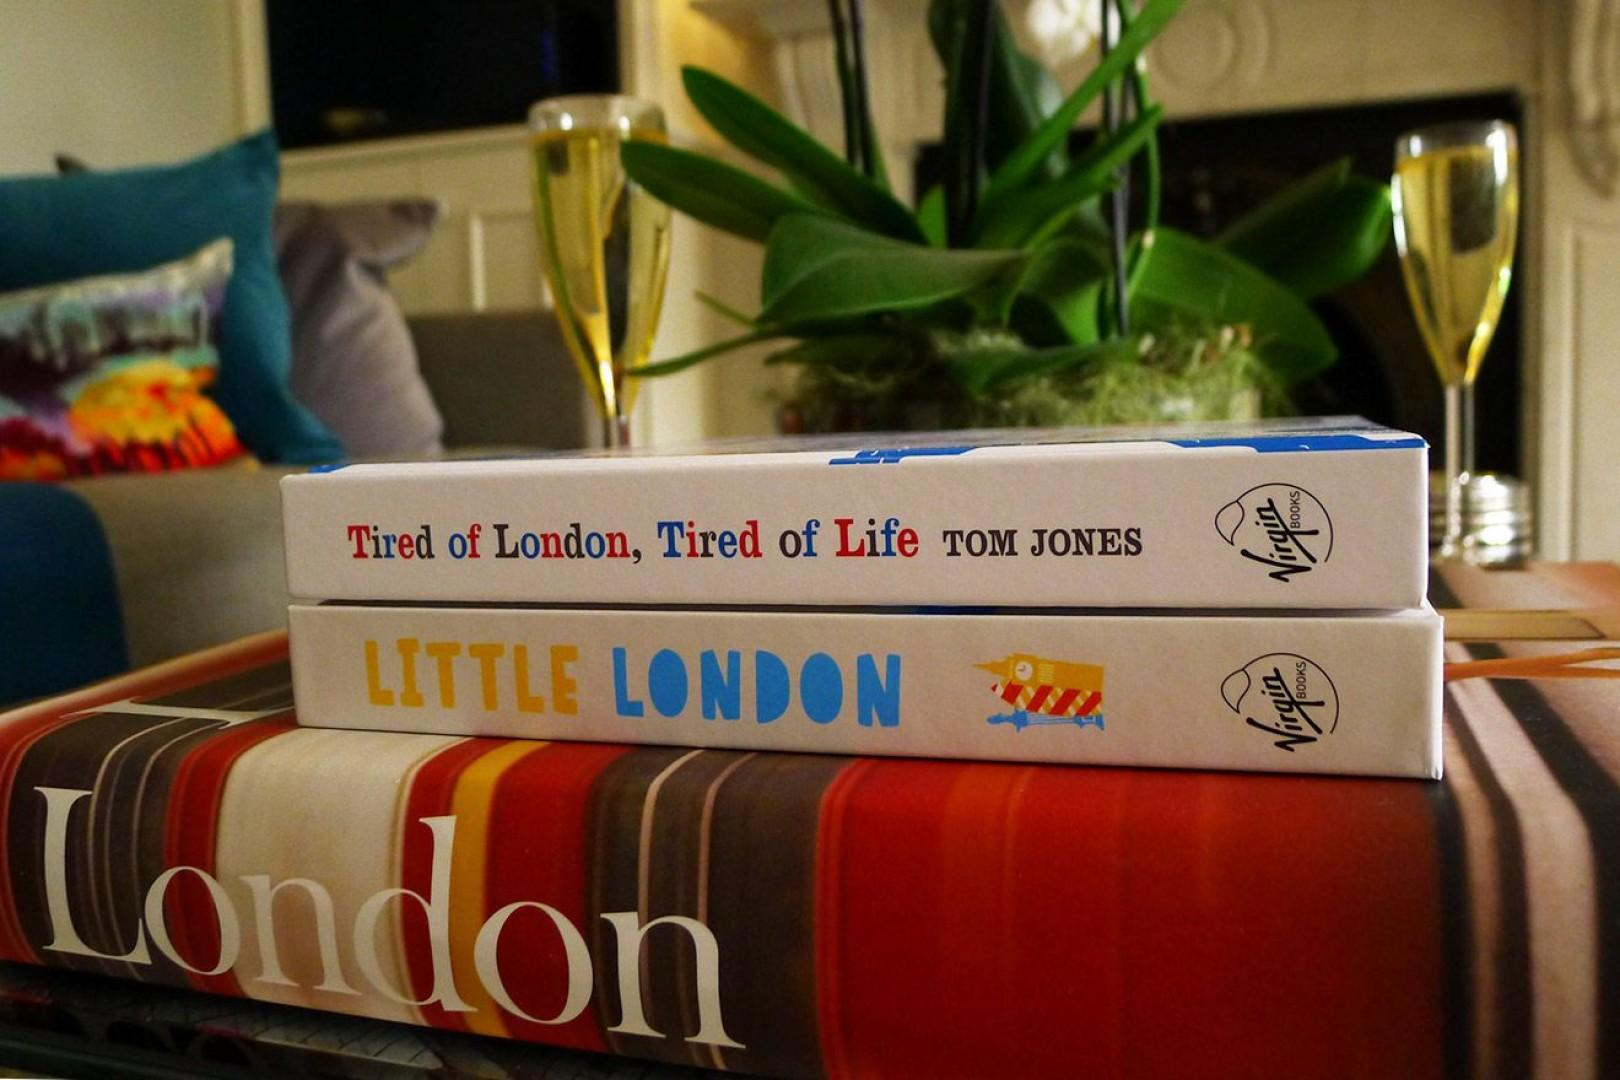 Great collection of London based books for you to read